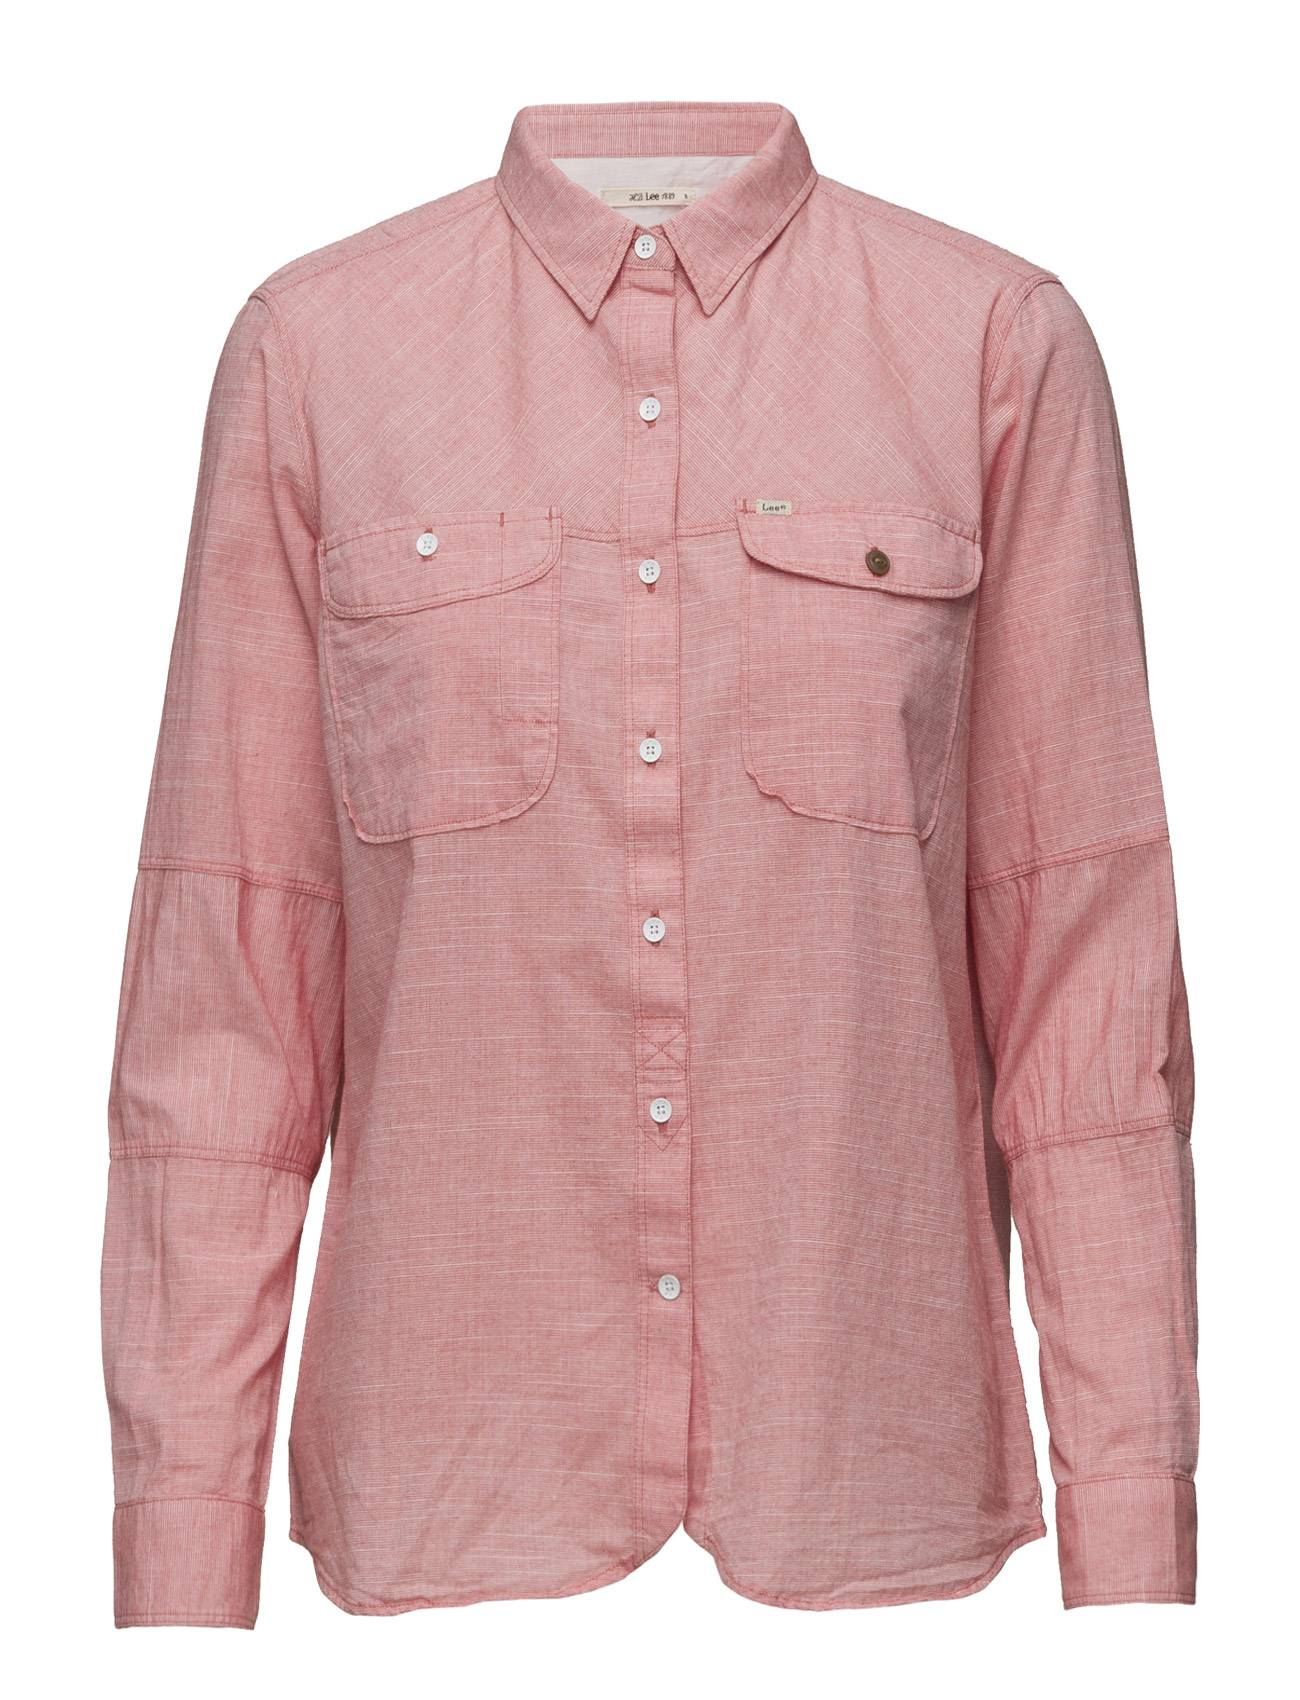 Lee Jeans Workwear Shirt